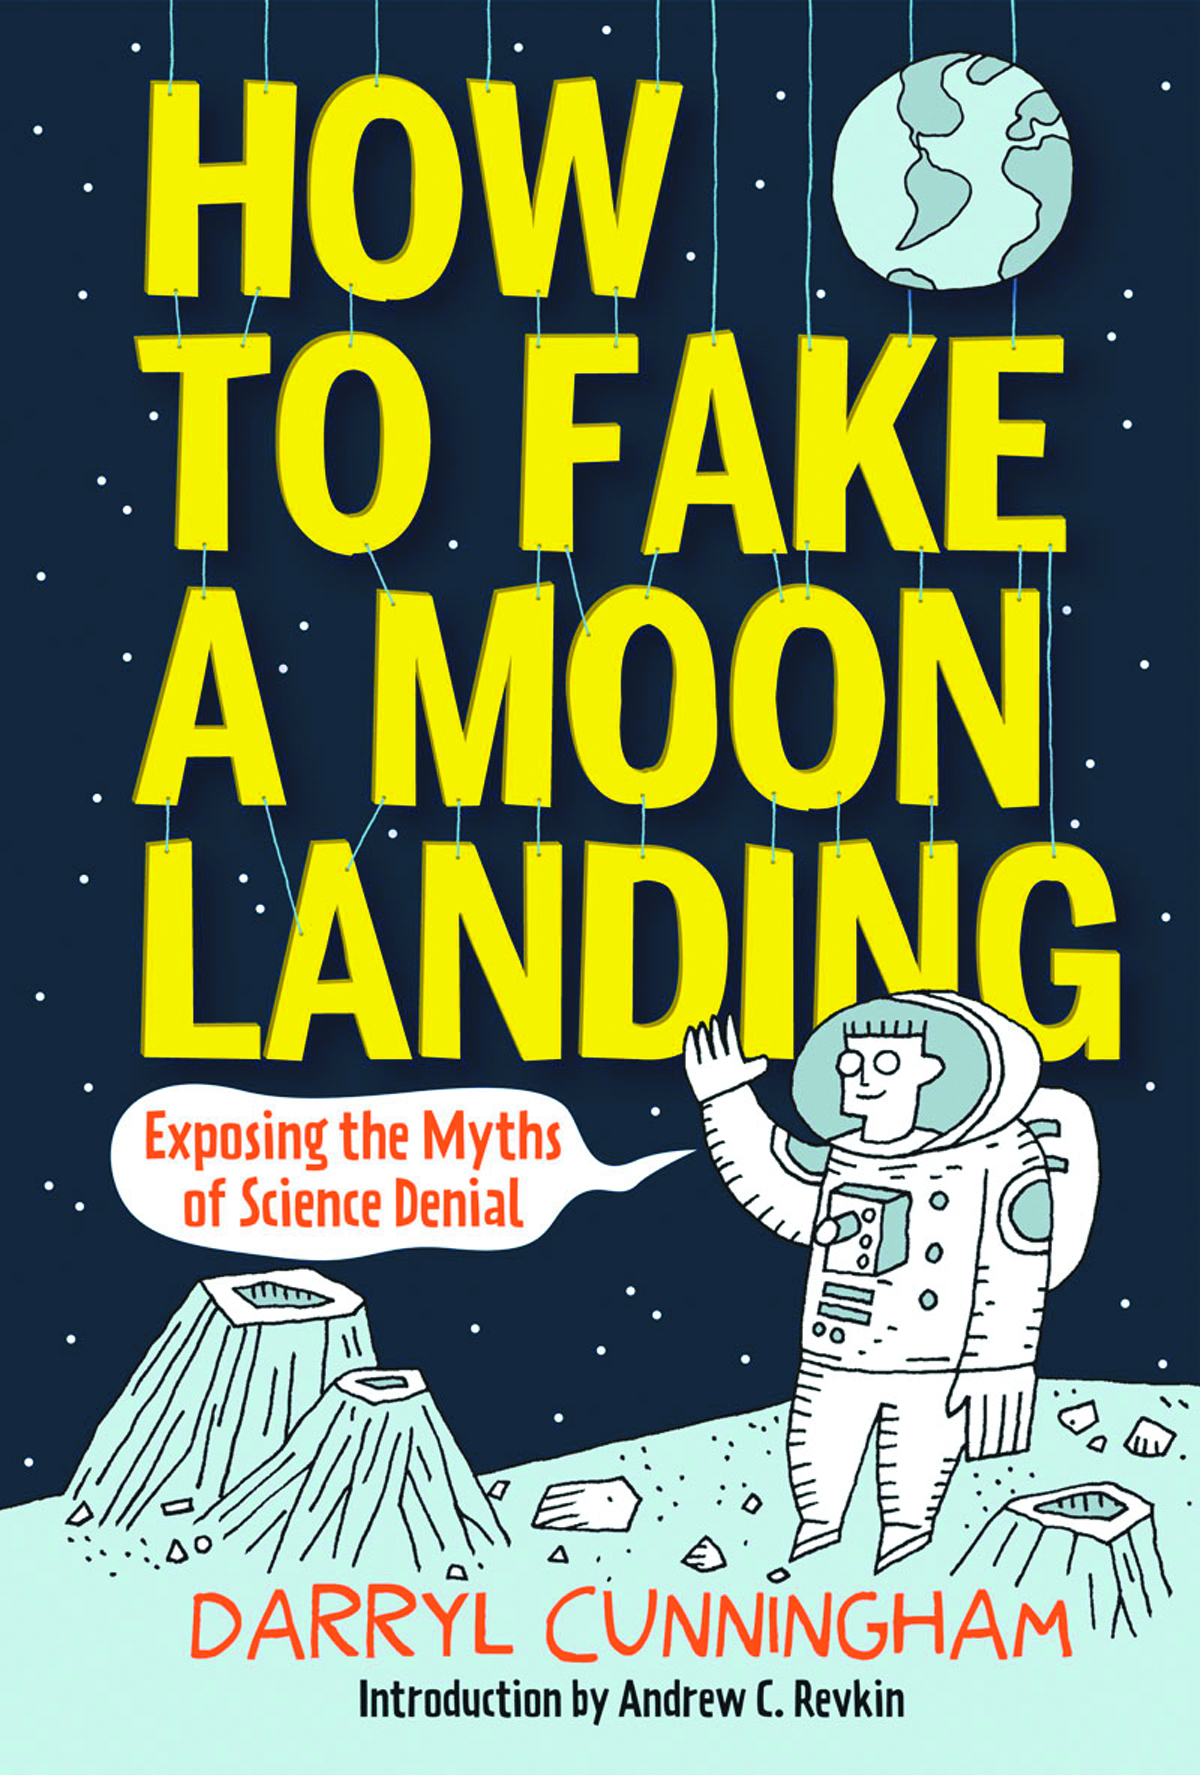 HT FAKE MOON LANDING EXPOSING MYTHS HC